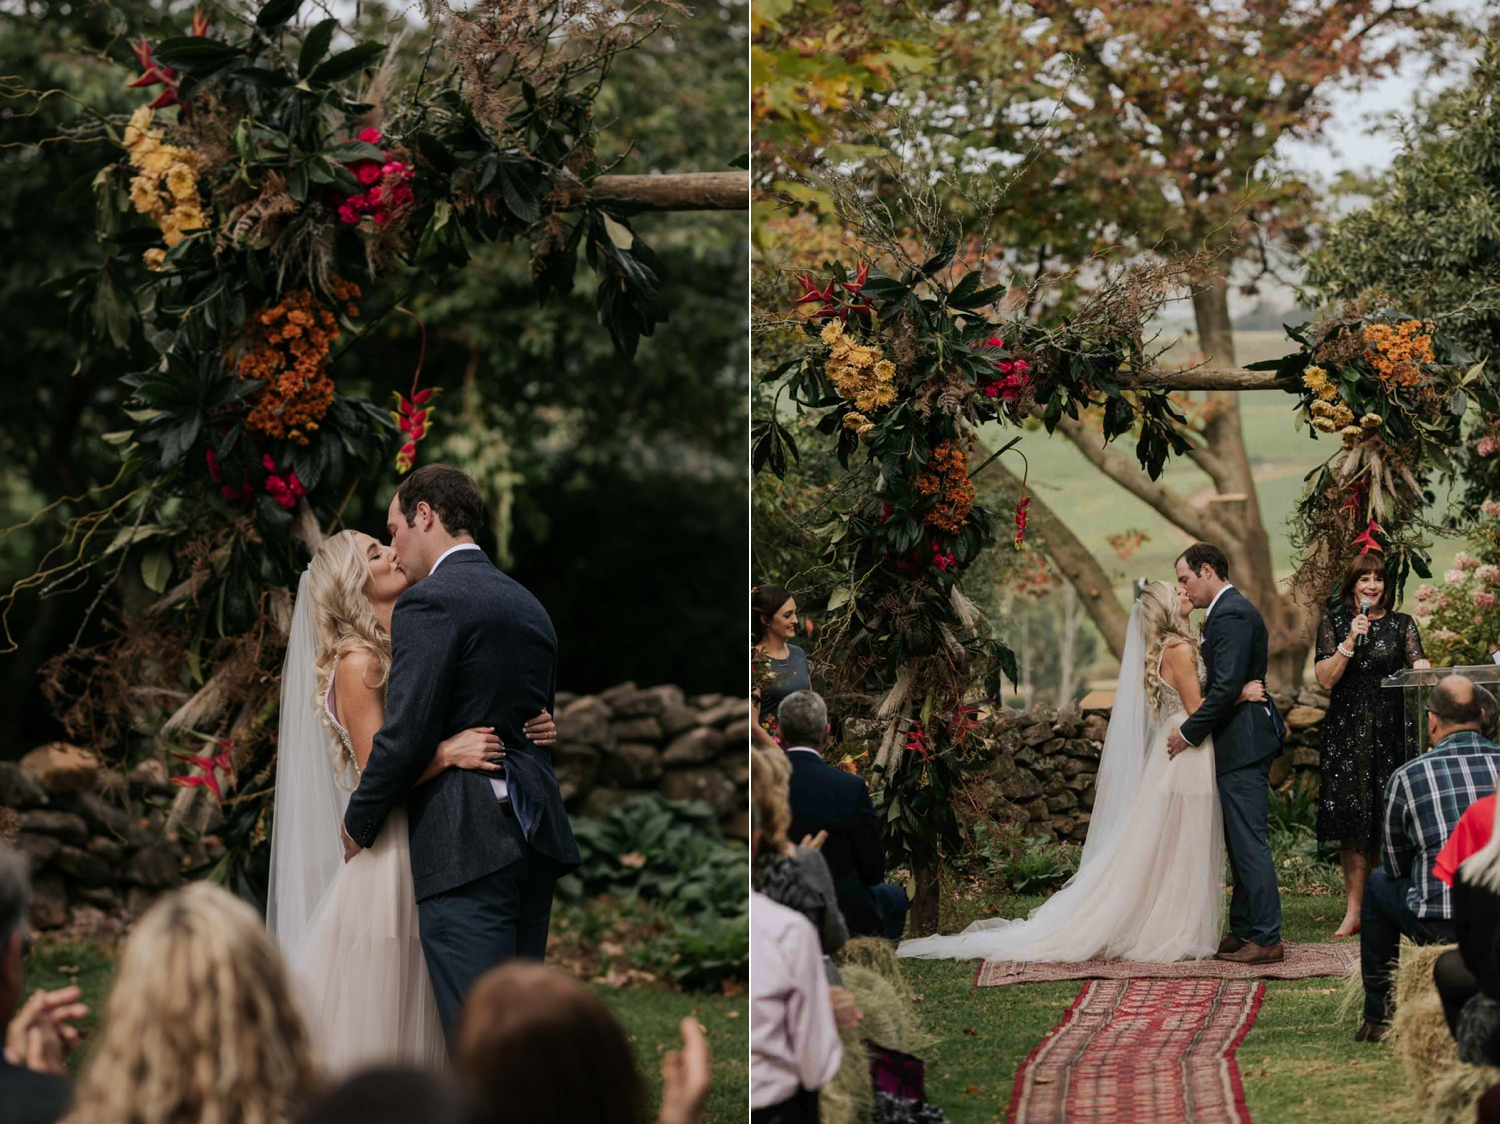 Bride and groom's first kiss under an arch of Autumn coloured flowers and roses on a farm with views in the background.